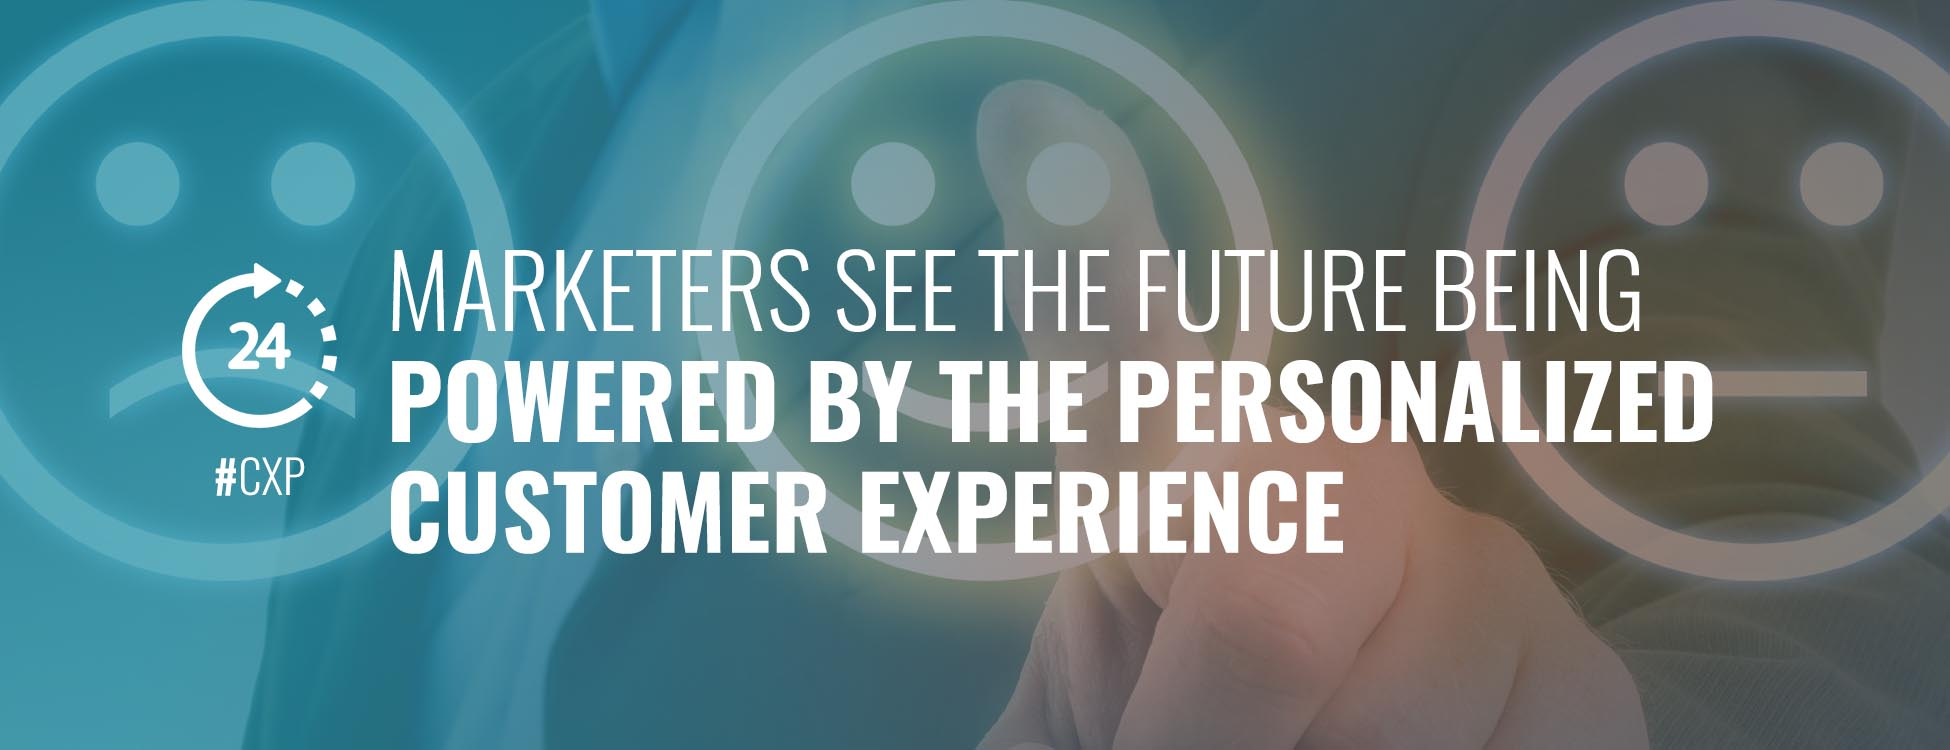 marketers-see-future-powered-by-personalized-customer-experience-cxp-insightrix